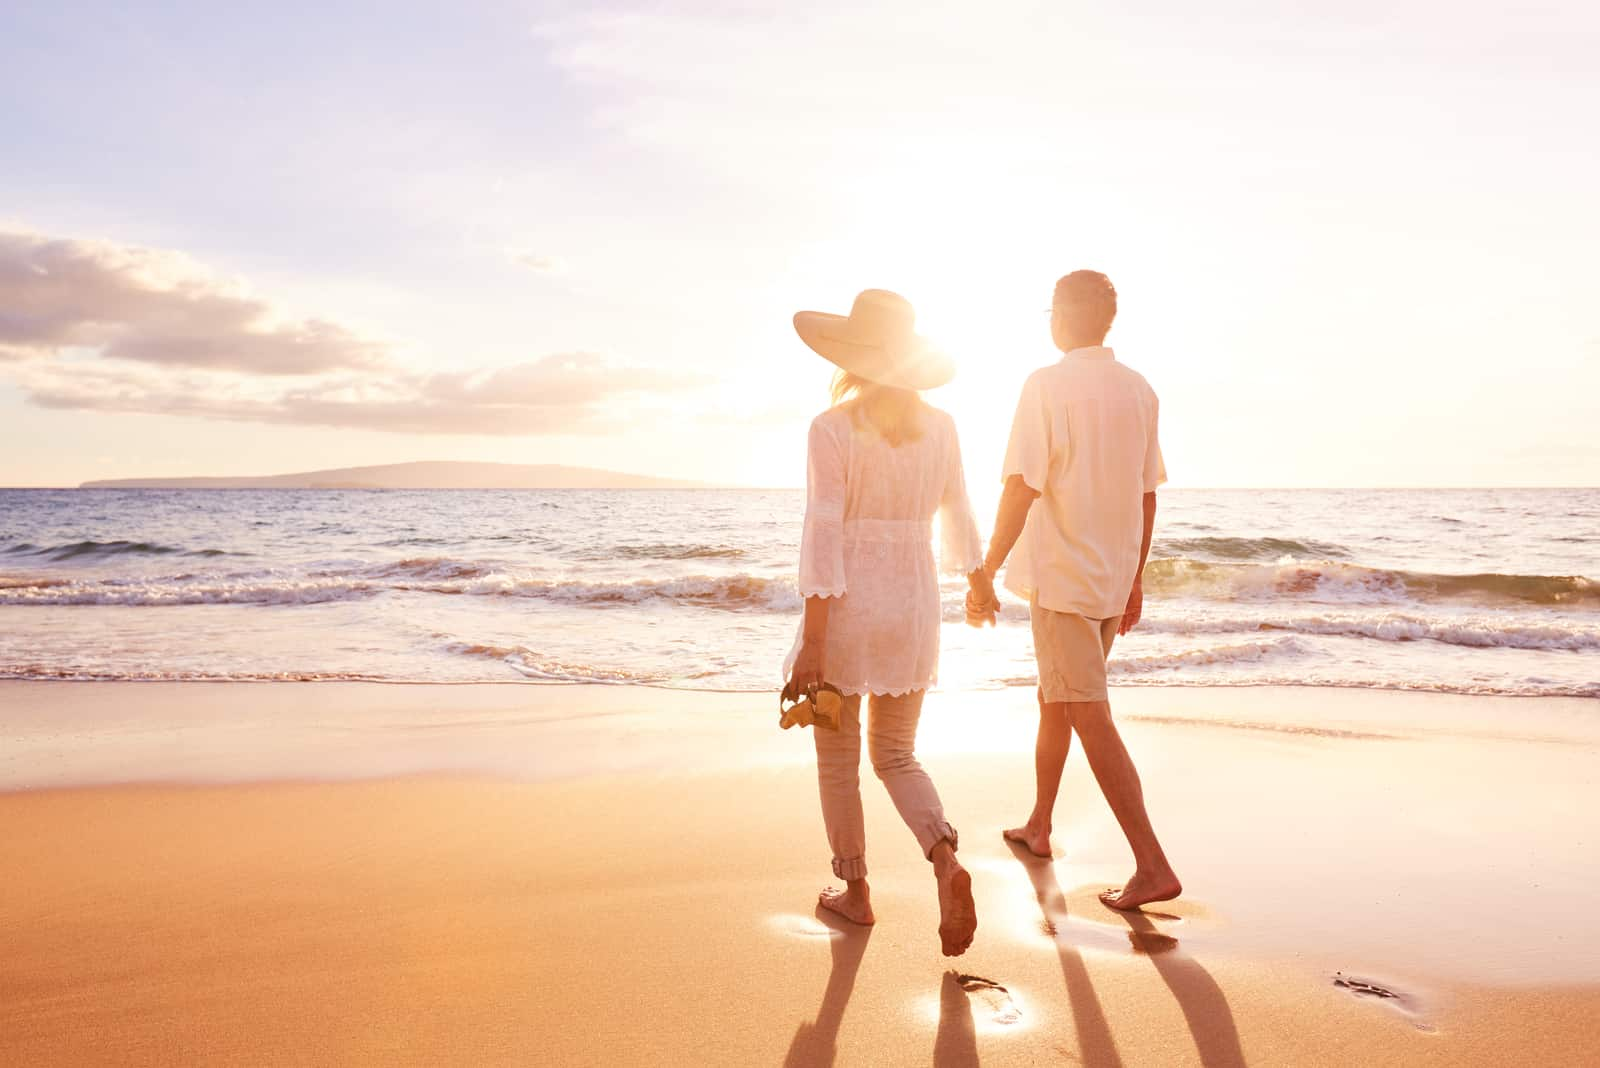 a man and a woman are walking along the beach